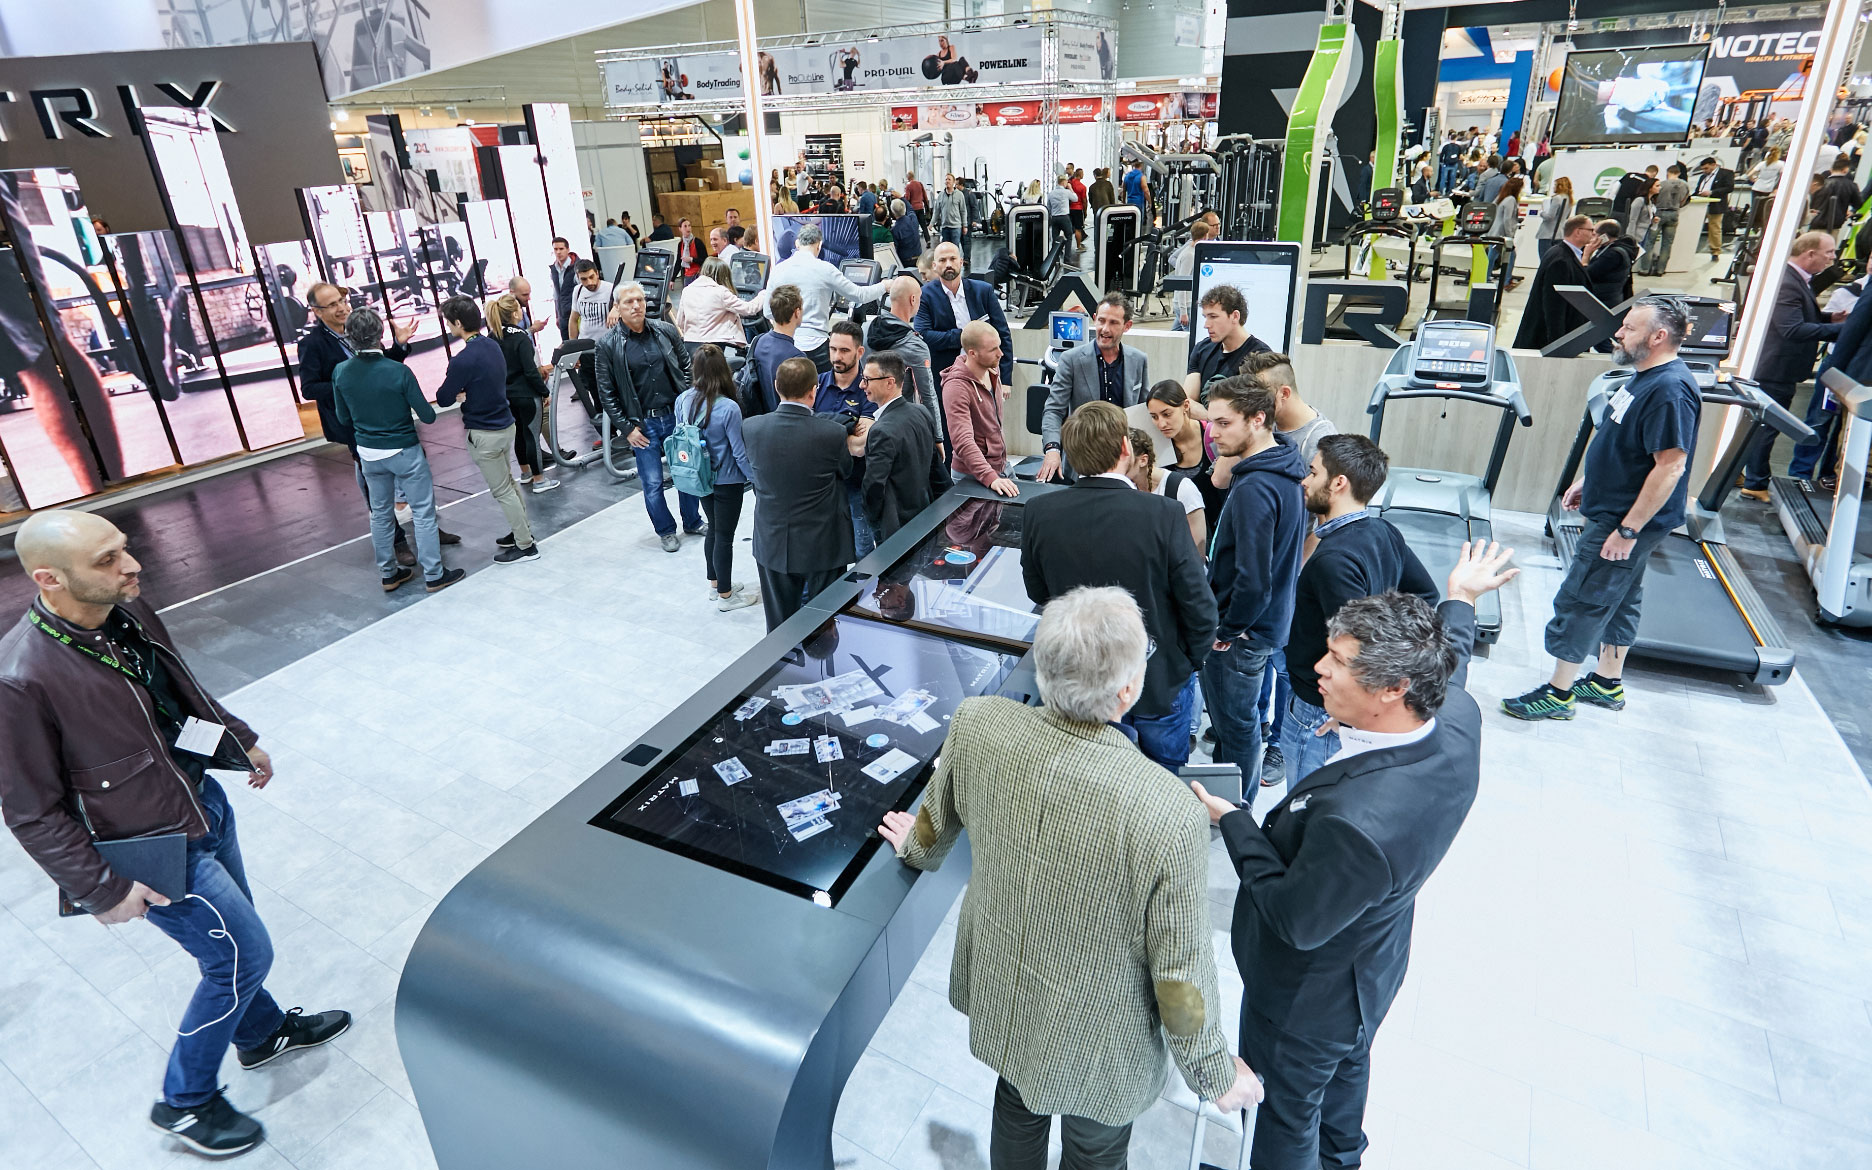 TouchTable, Touch Tisch, Multitouch Table, LEAD Generierung, LEADs, Messe